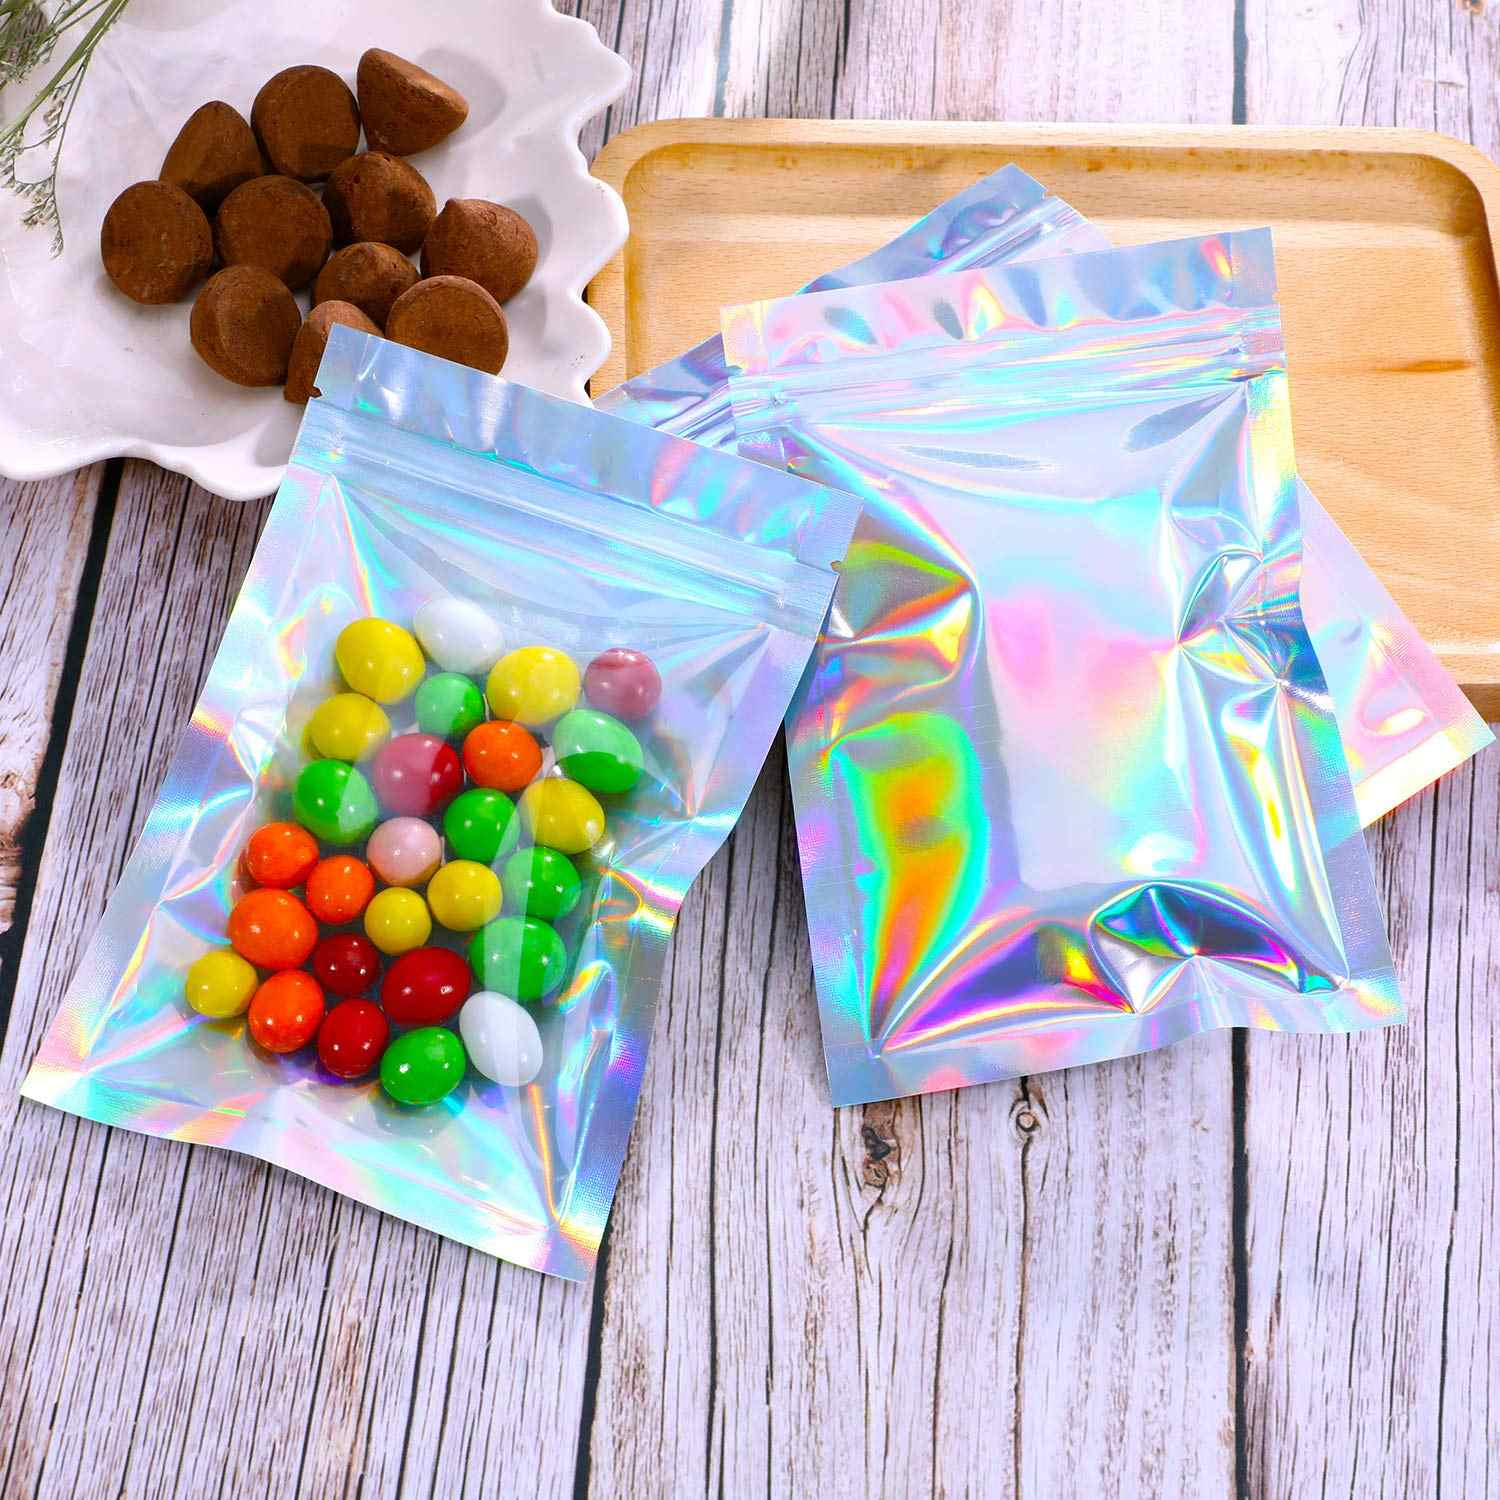 100pcs Flat Zip lock Bath Salt Cosmetic Bag One Side Clear Holographic Laser Mini Aluminum Foil Zip Lock Plastic Bags Thick